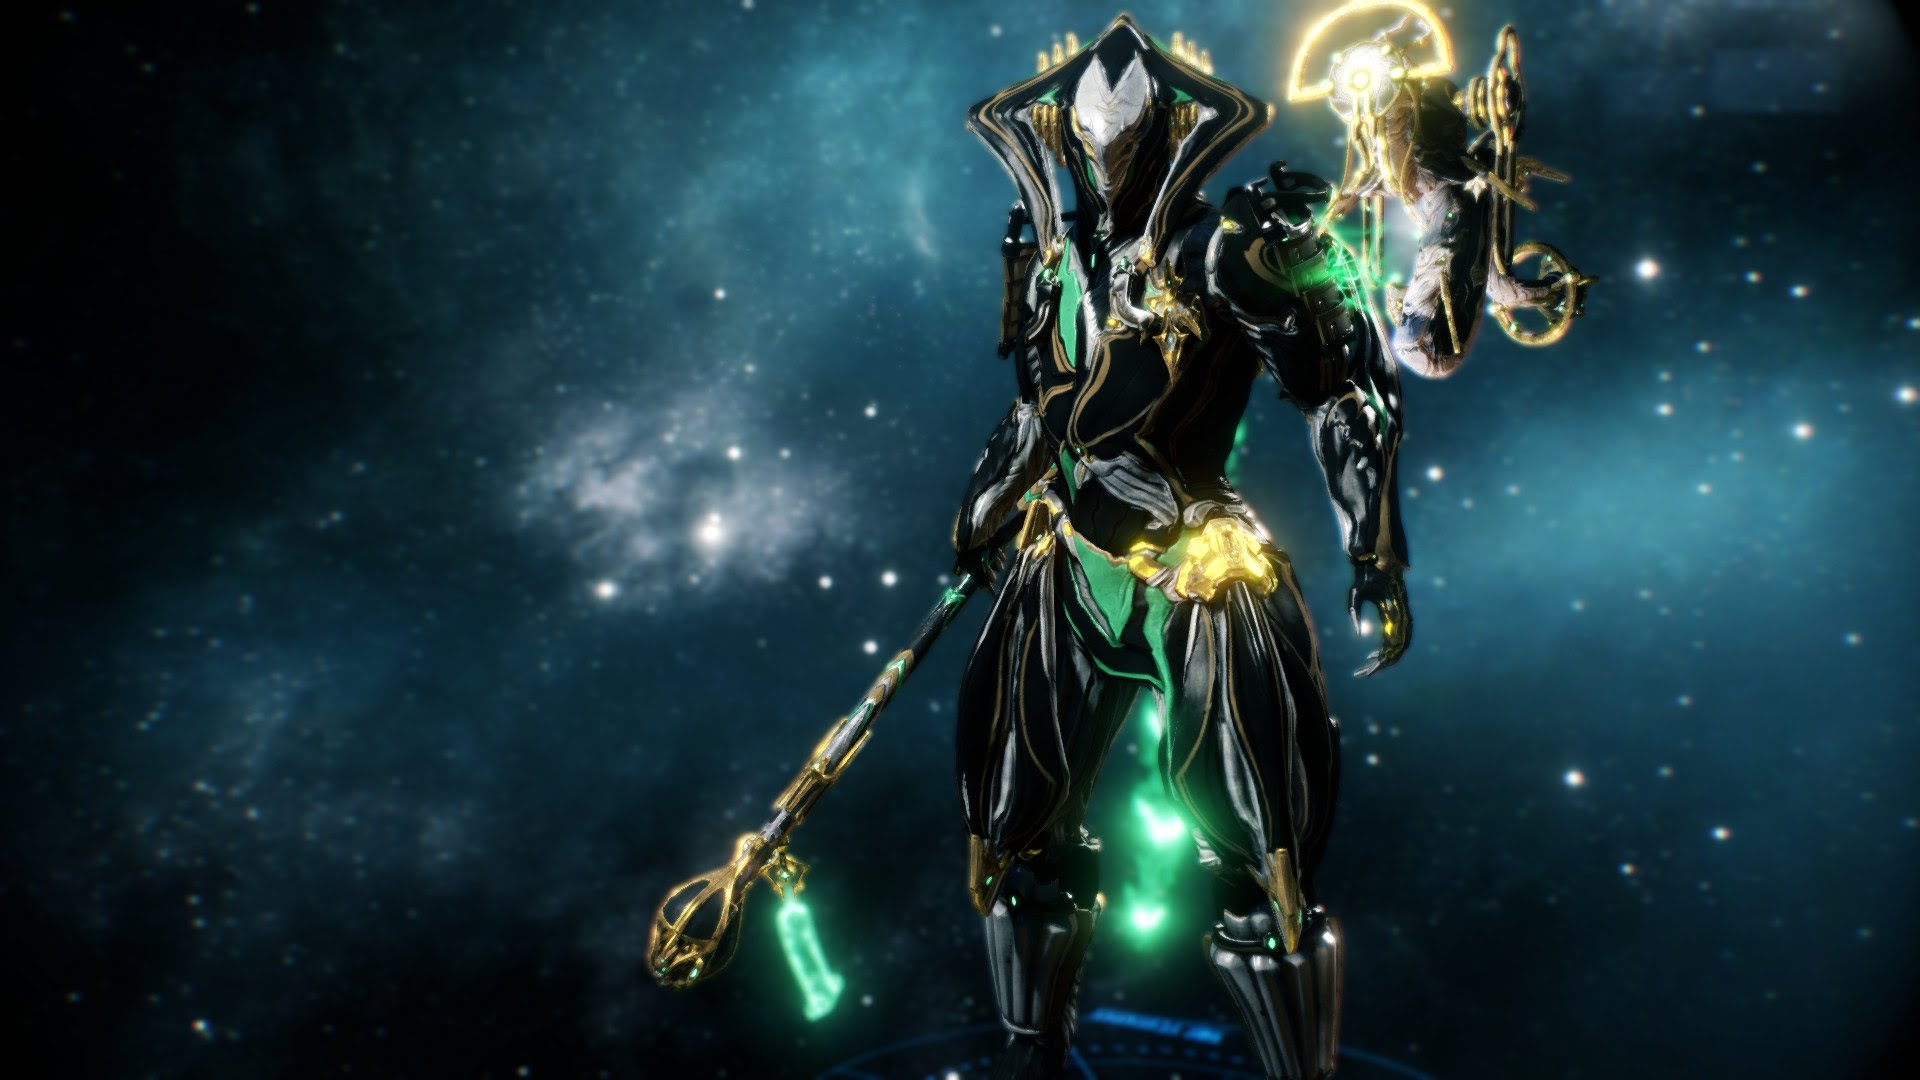 Warframe loki prime cost - Loki Prime Deception Frame Distraction And Escape Capibilities Along With The Ability To Disarm Enemies Current Avg Set Price 570 650p